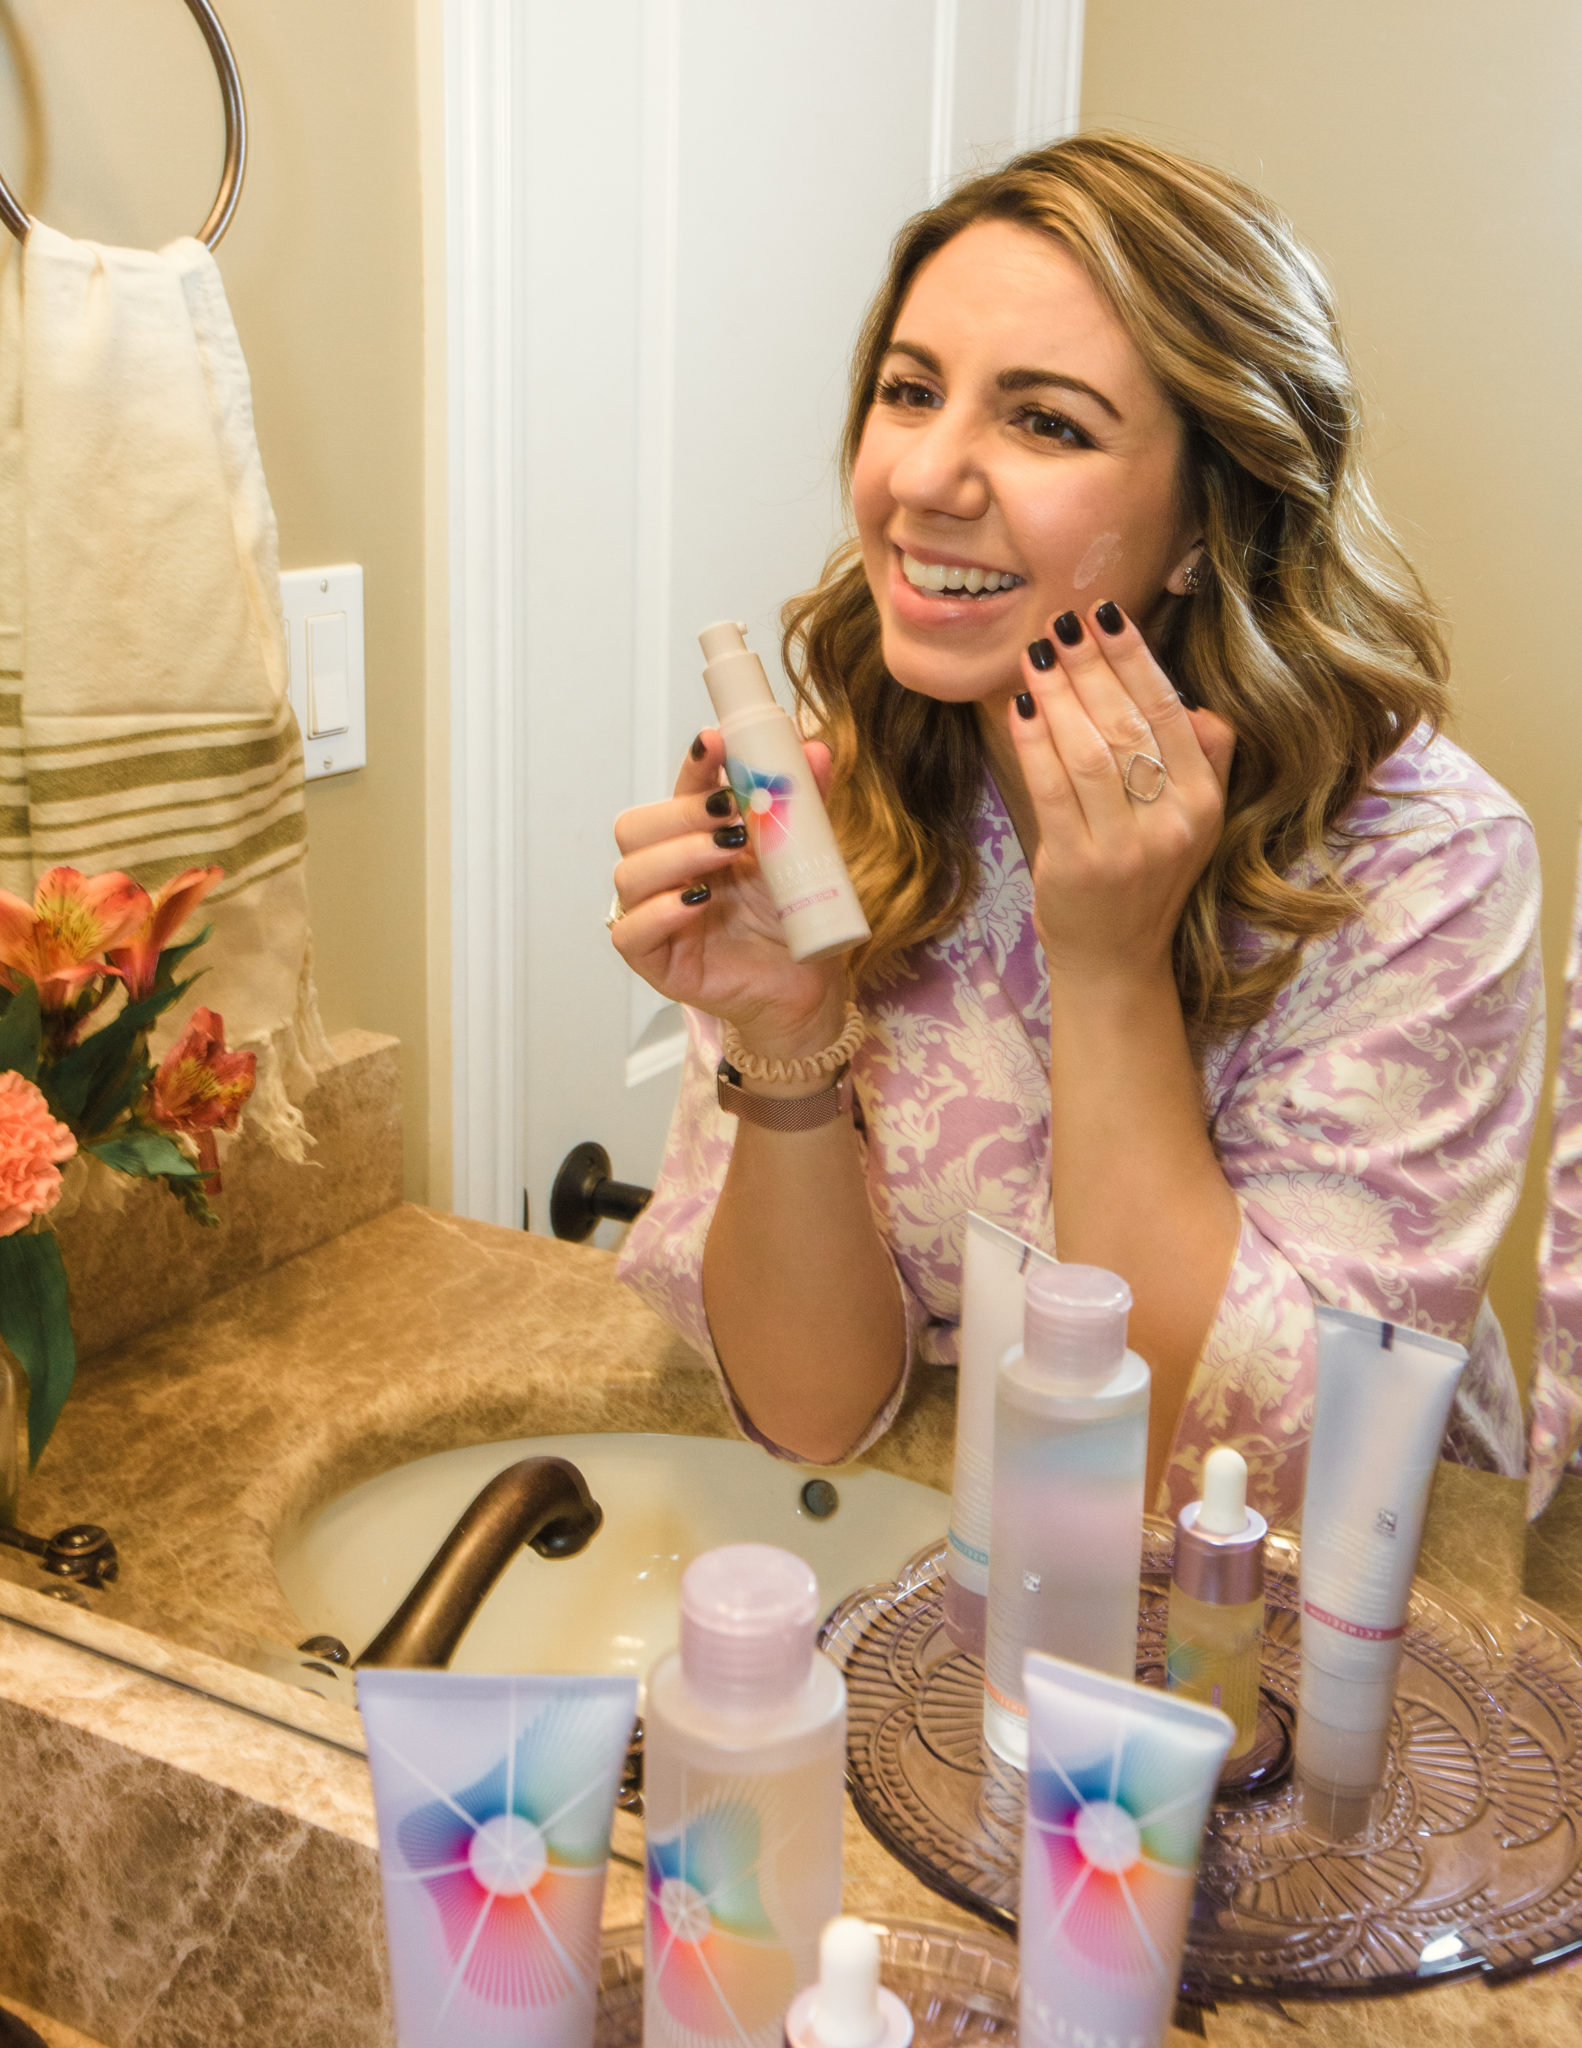 Find Your Personalized Skinsei Skincare Routine by popular Chicago beauty blog, Glass of Glam: image of a woman using Skinsei skincare products.